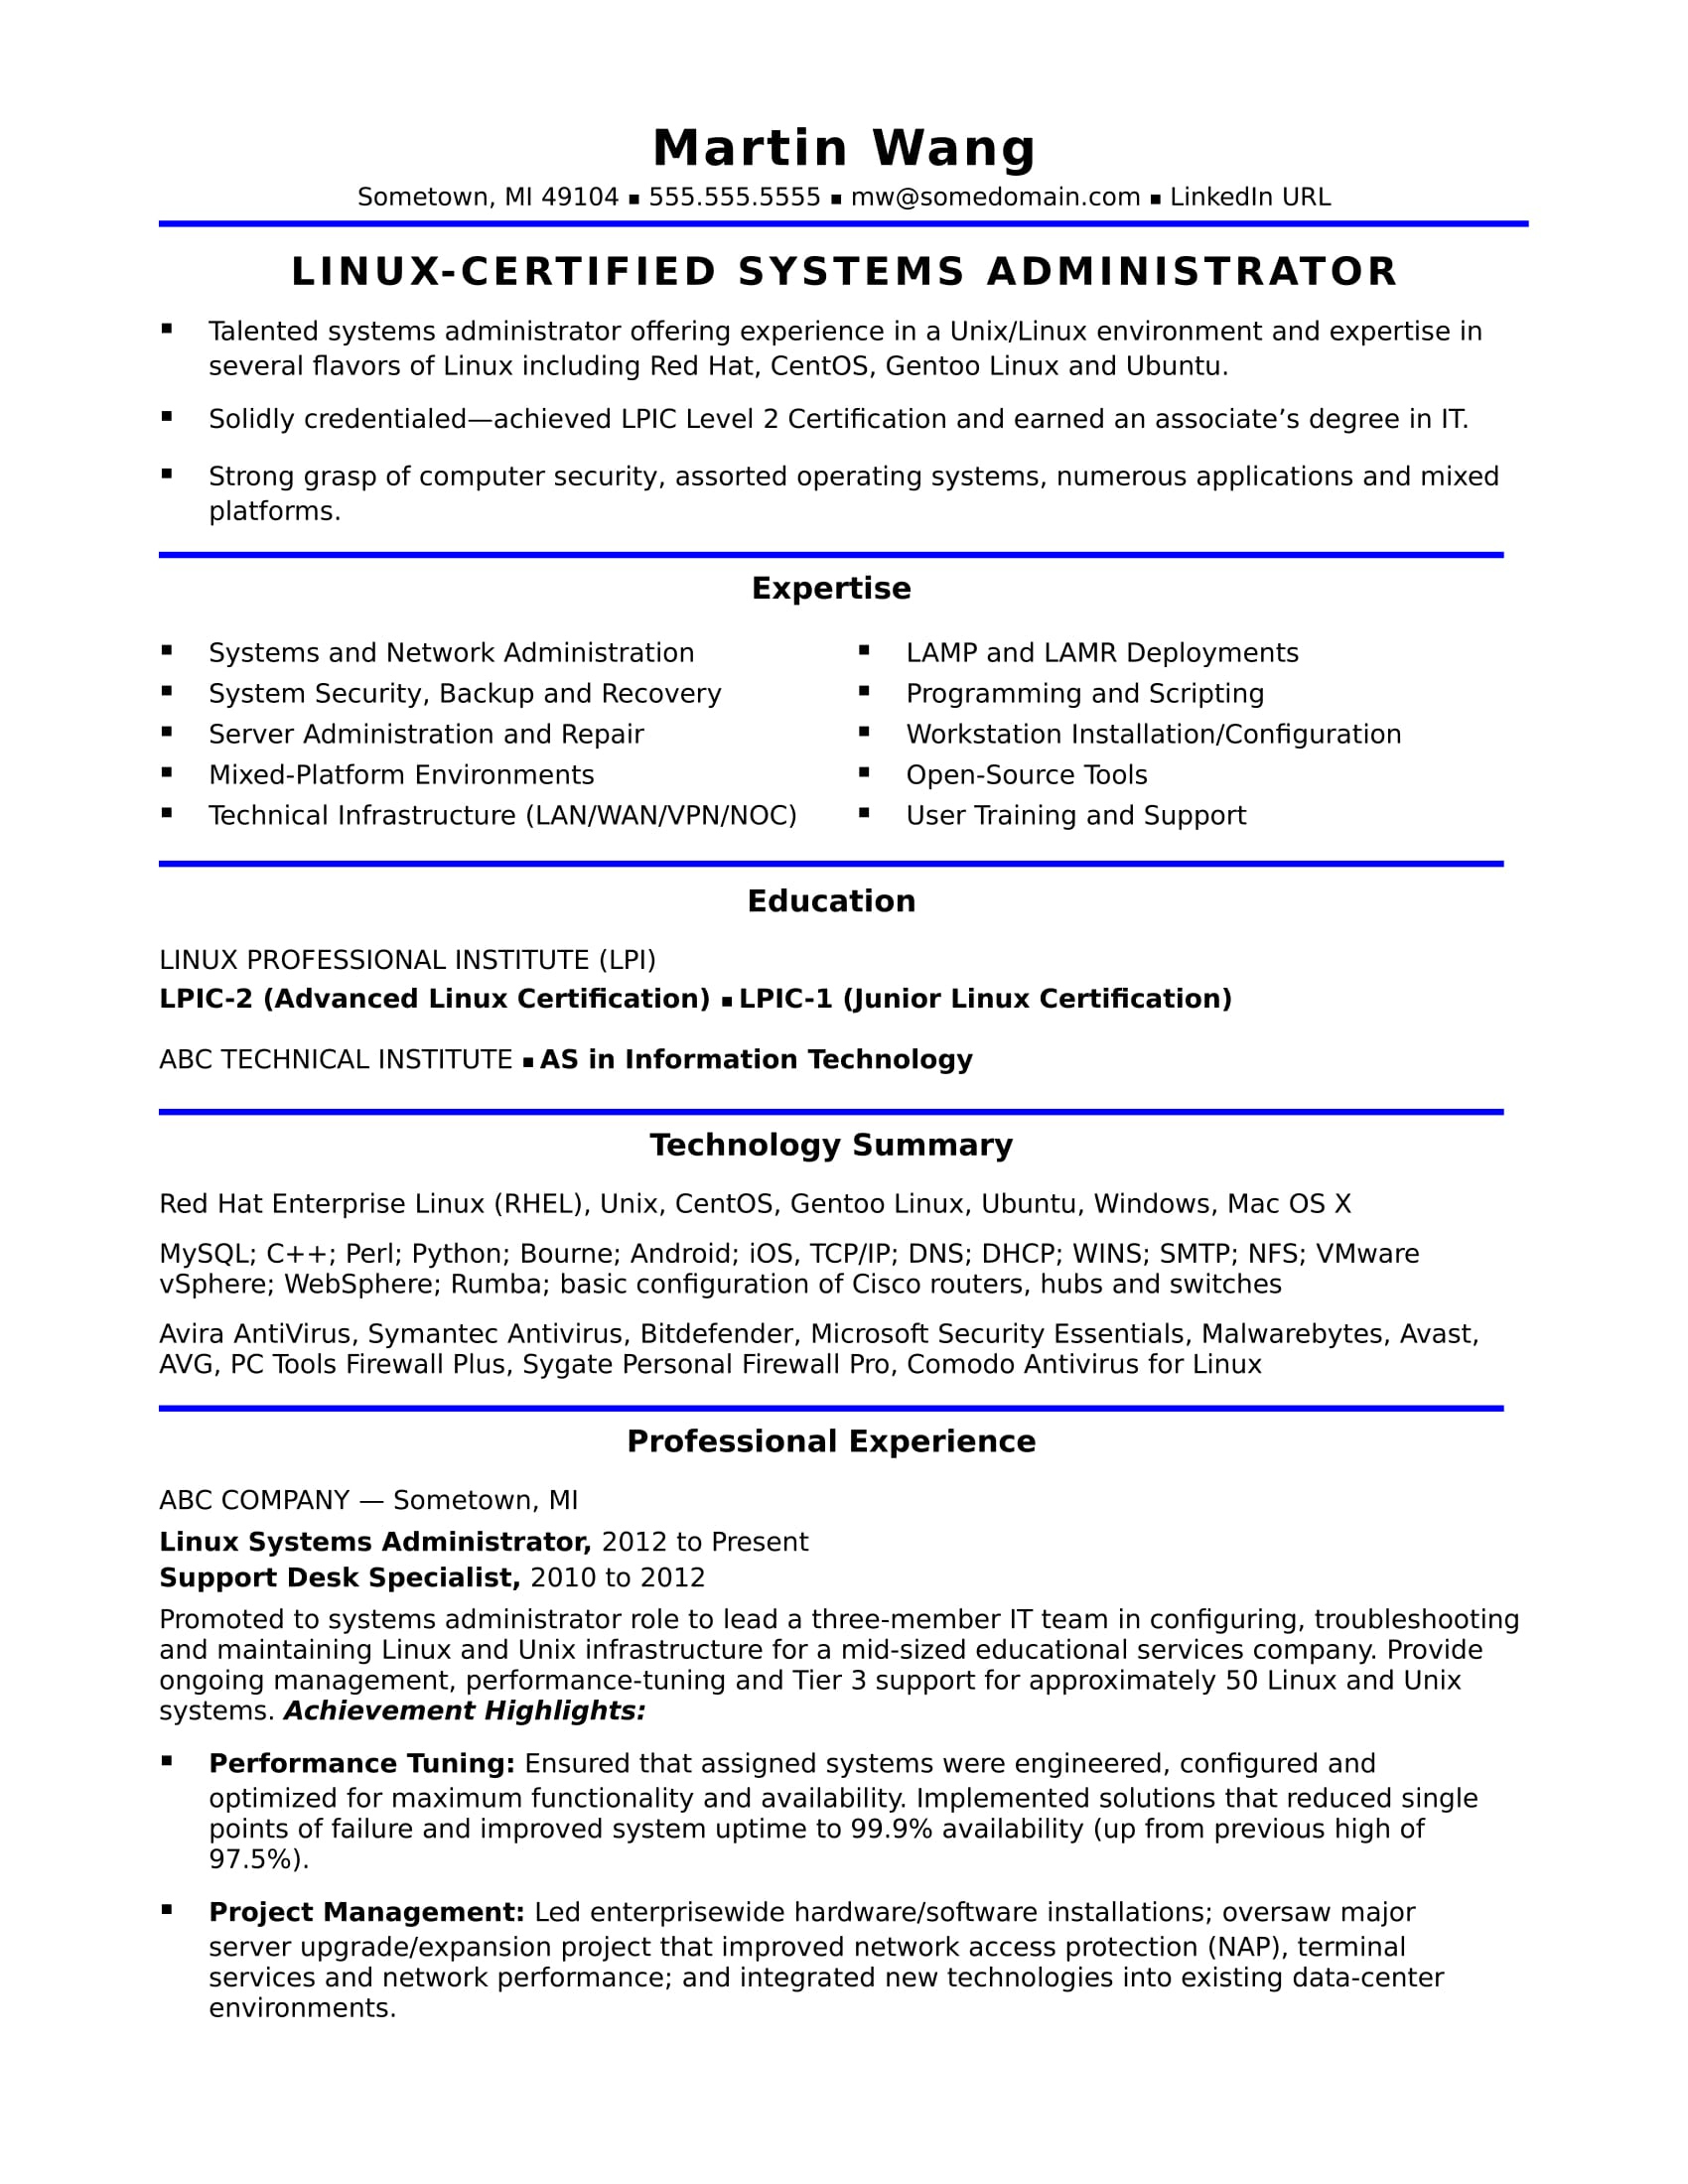 High Quality Sample Resume For A Midlevel Systems Administrator  System Admin Resume